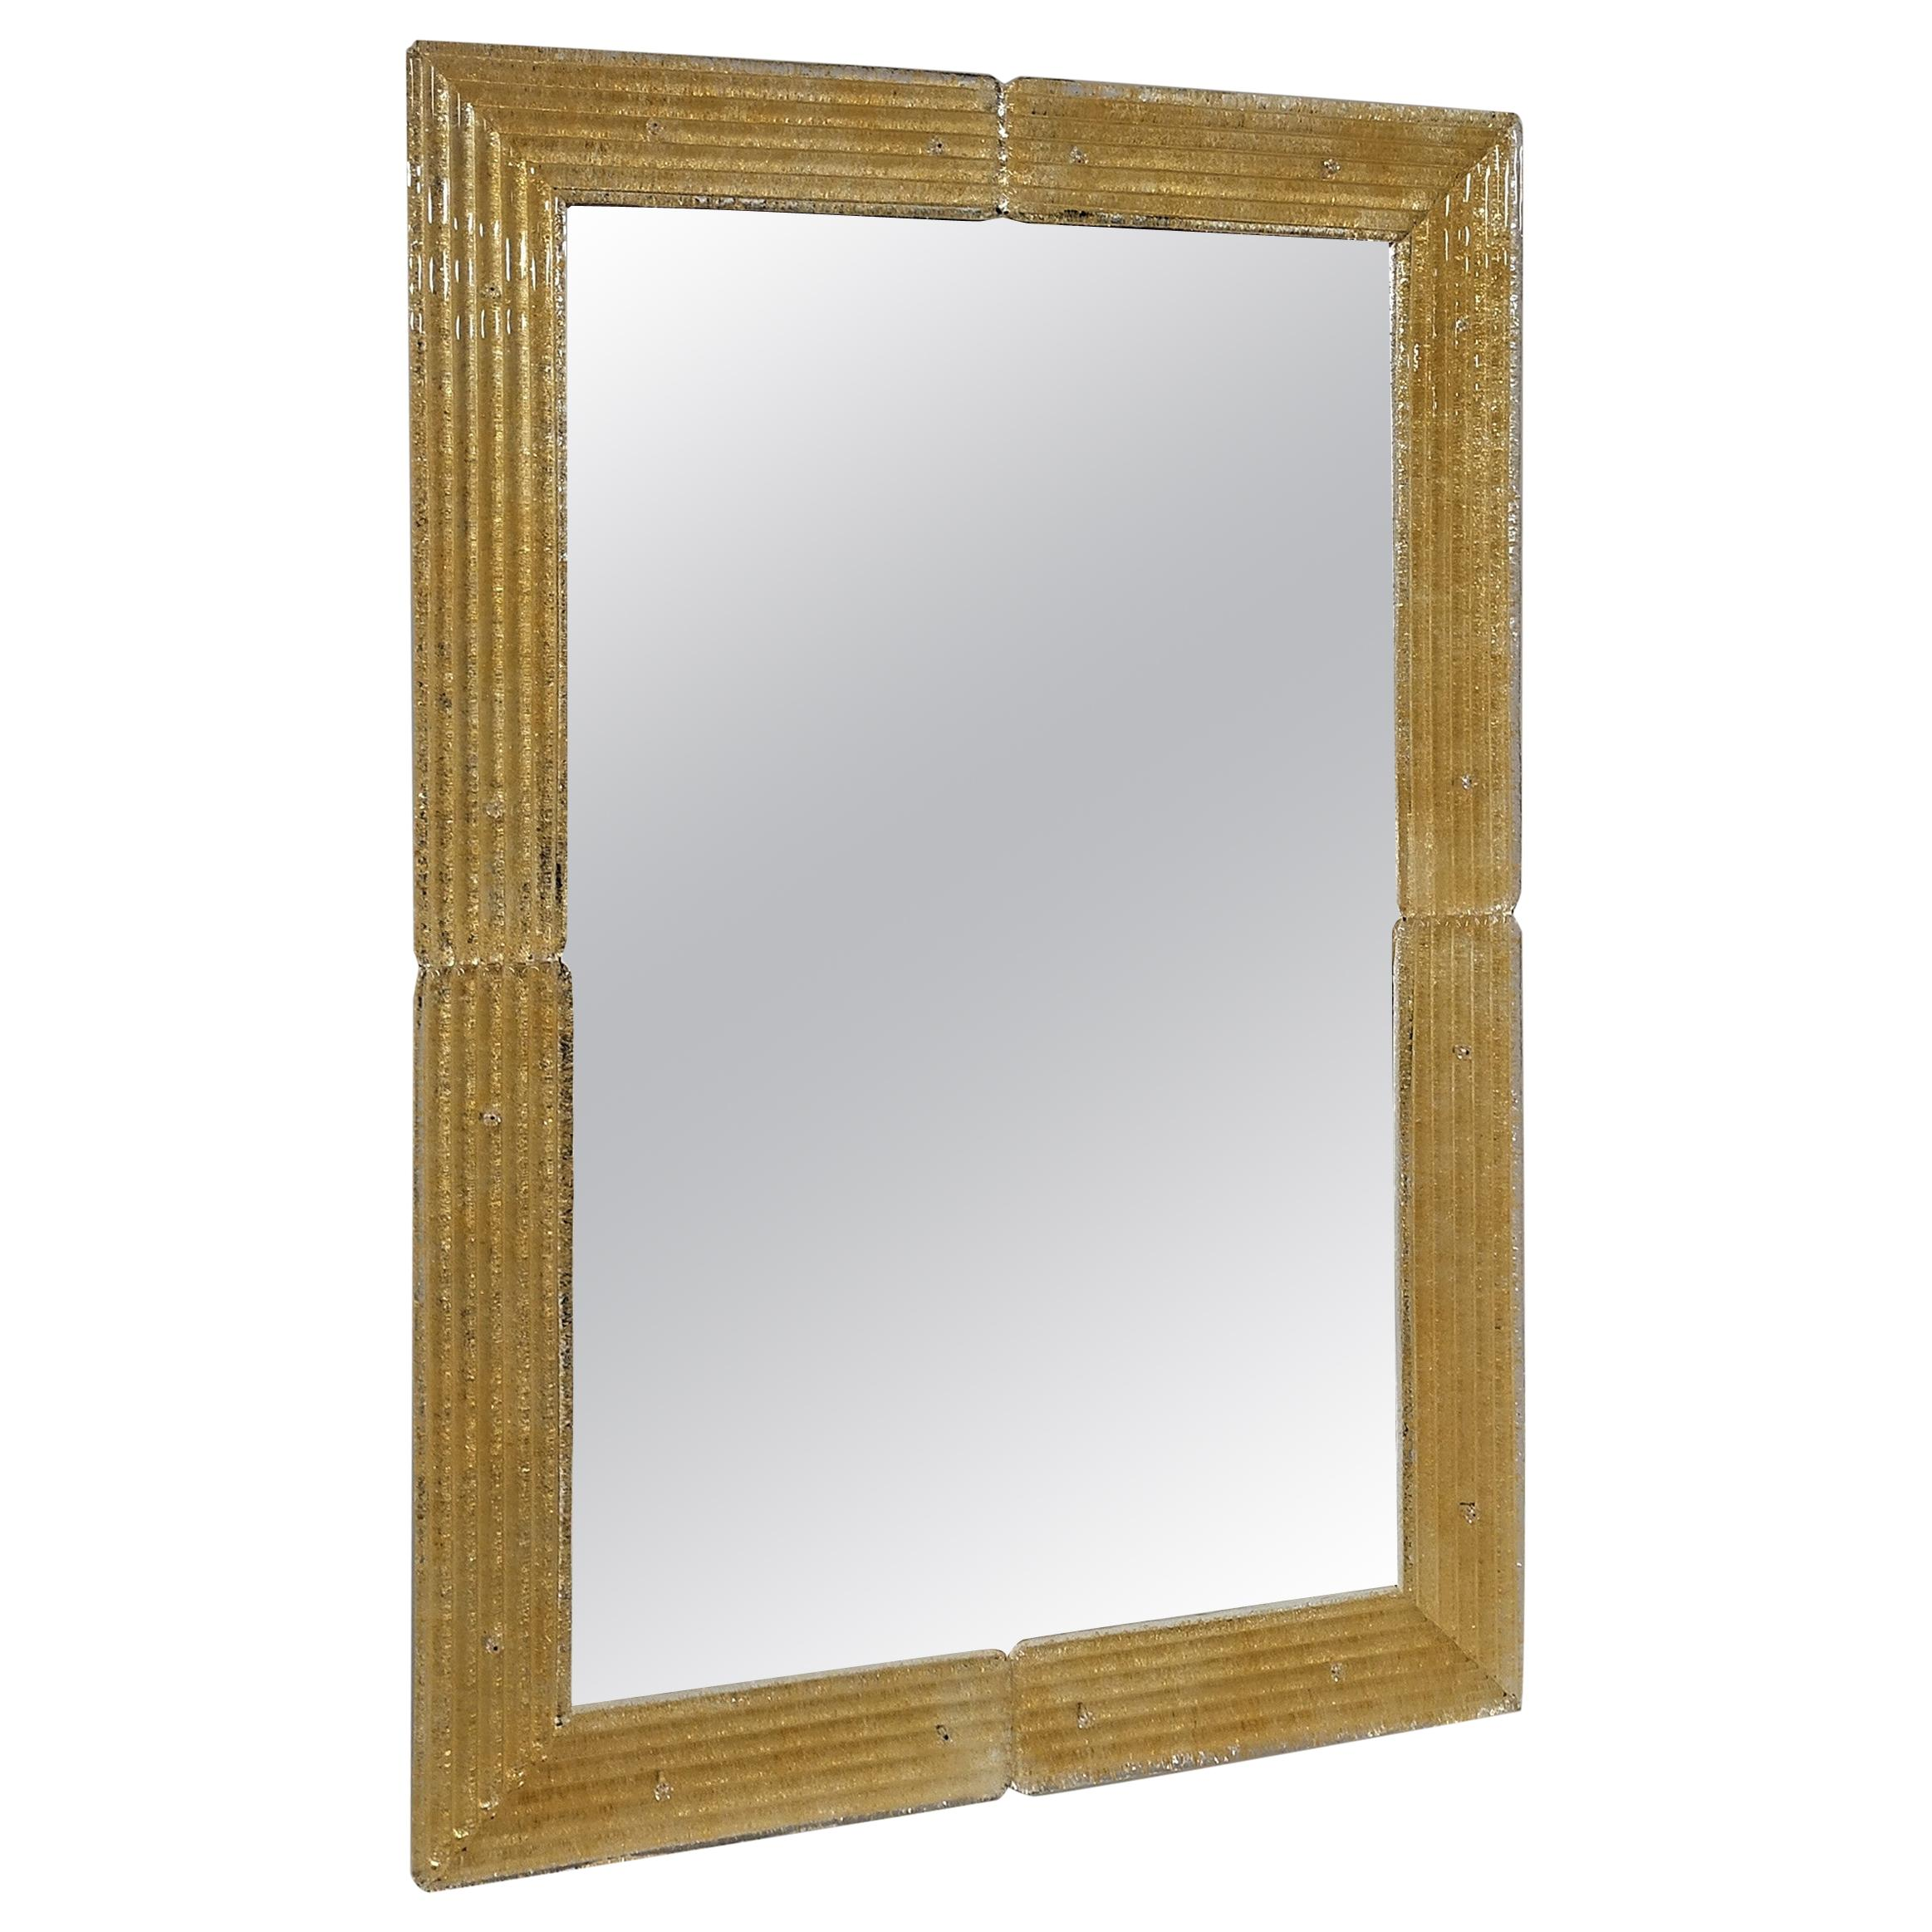 Contemporary Mirror, in Murano Glass Gold Frame, Handcrafted by Fratelli Tosi